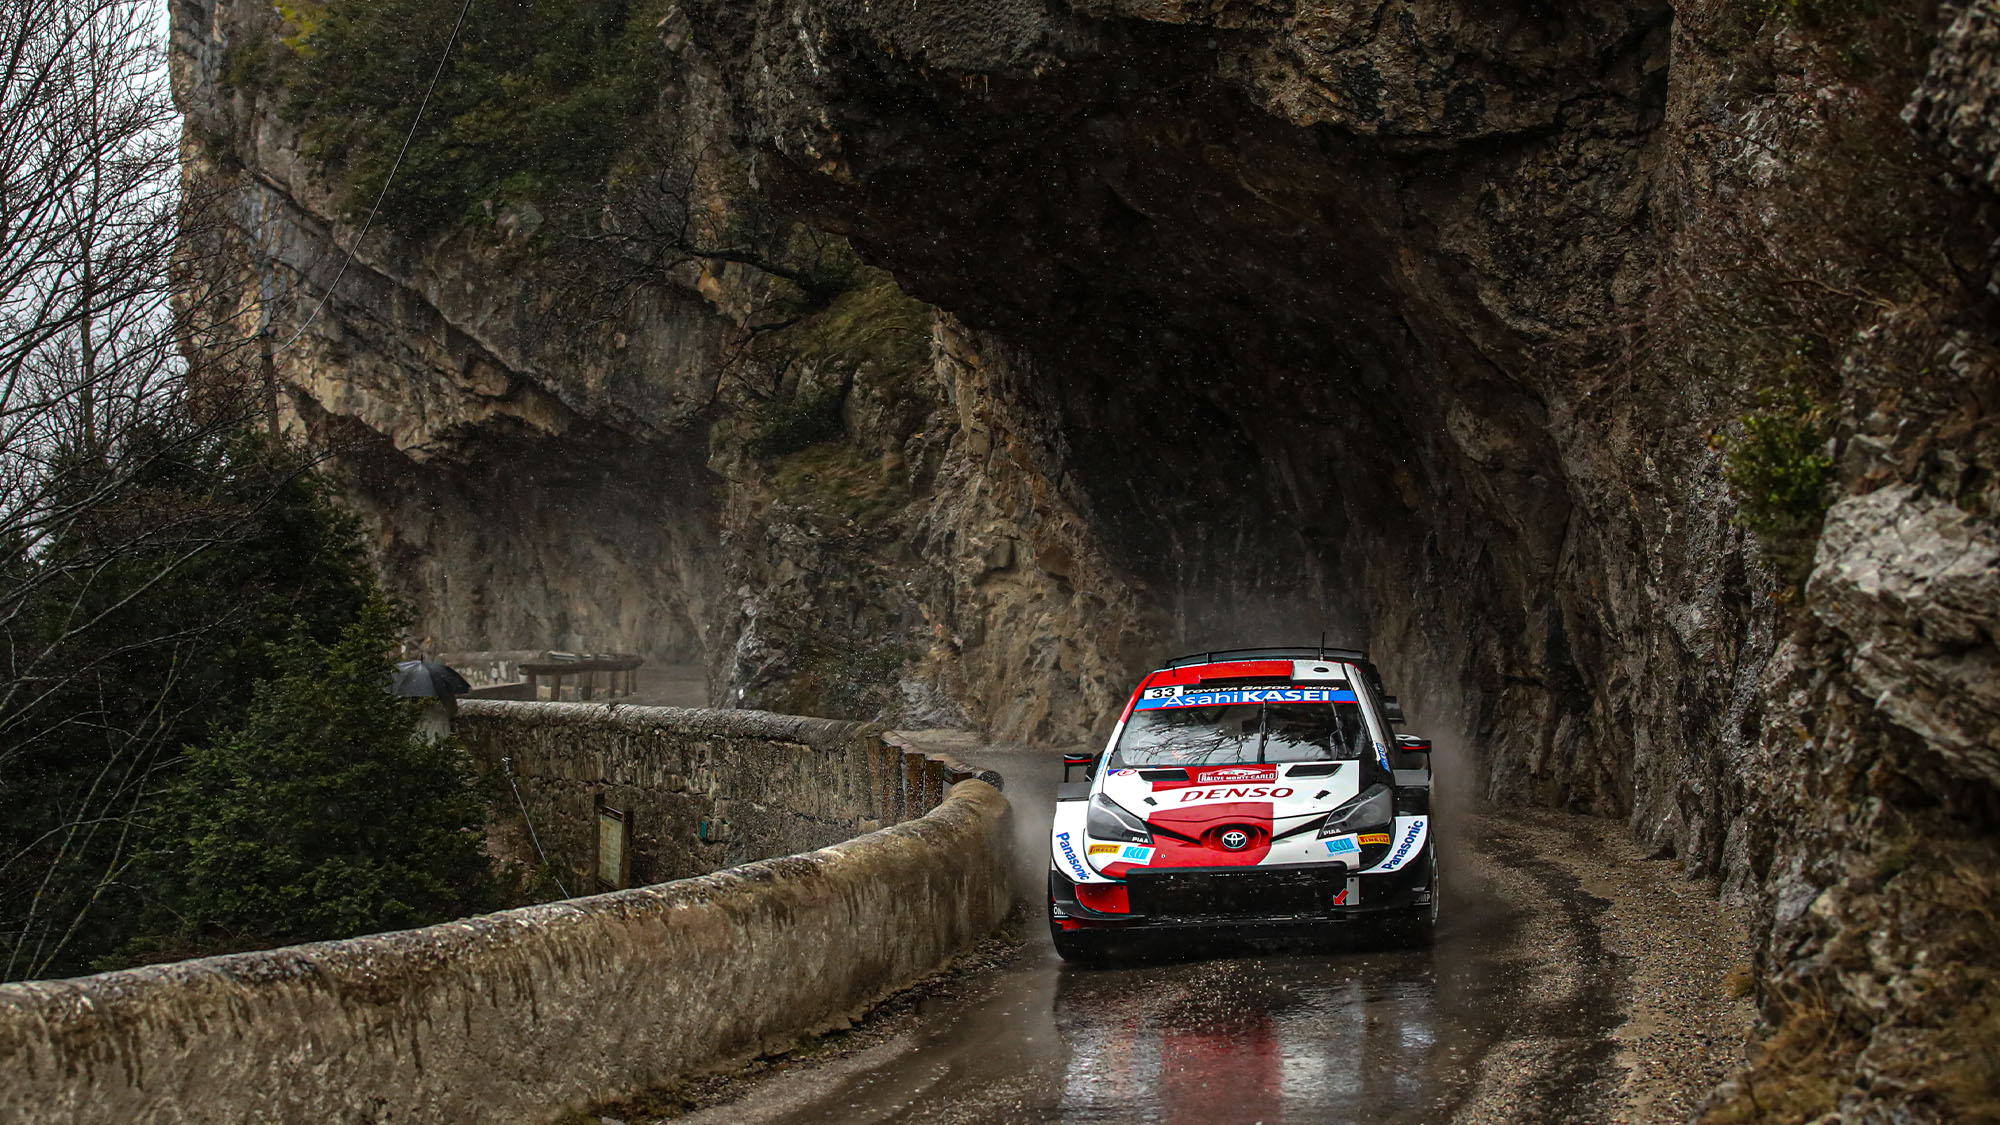 GAP, FRANCE - JANUARY 22: Elfyn Evans of Great Britain and Scott Martin of Great Britain compete with their Toyota Gazoo Racing WRT Toyota Yaris WRC during the FIA World Rally Championsip Monte Carlo Day Two on January 22, 2021 in Gap, France. (Photo by Massimo Bettiol/Getty Images)